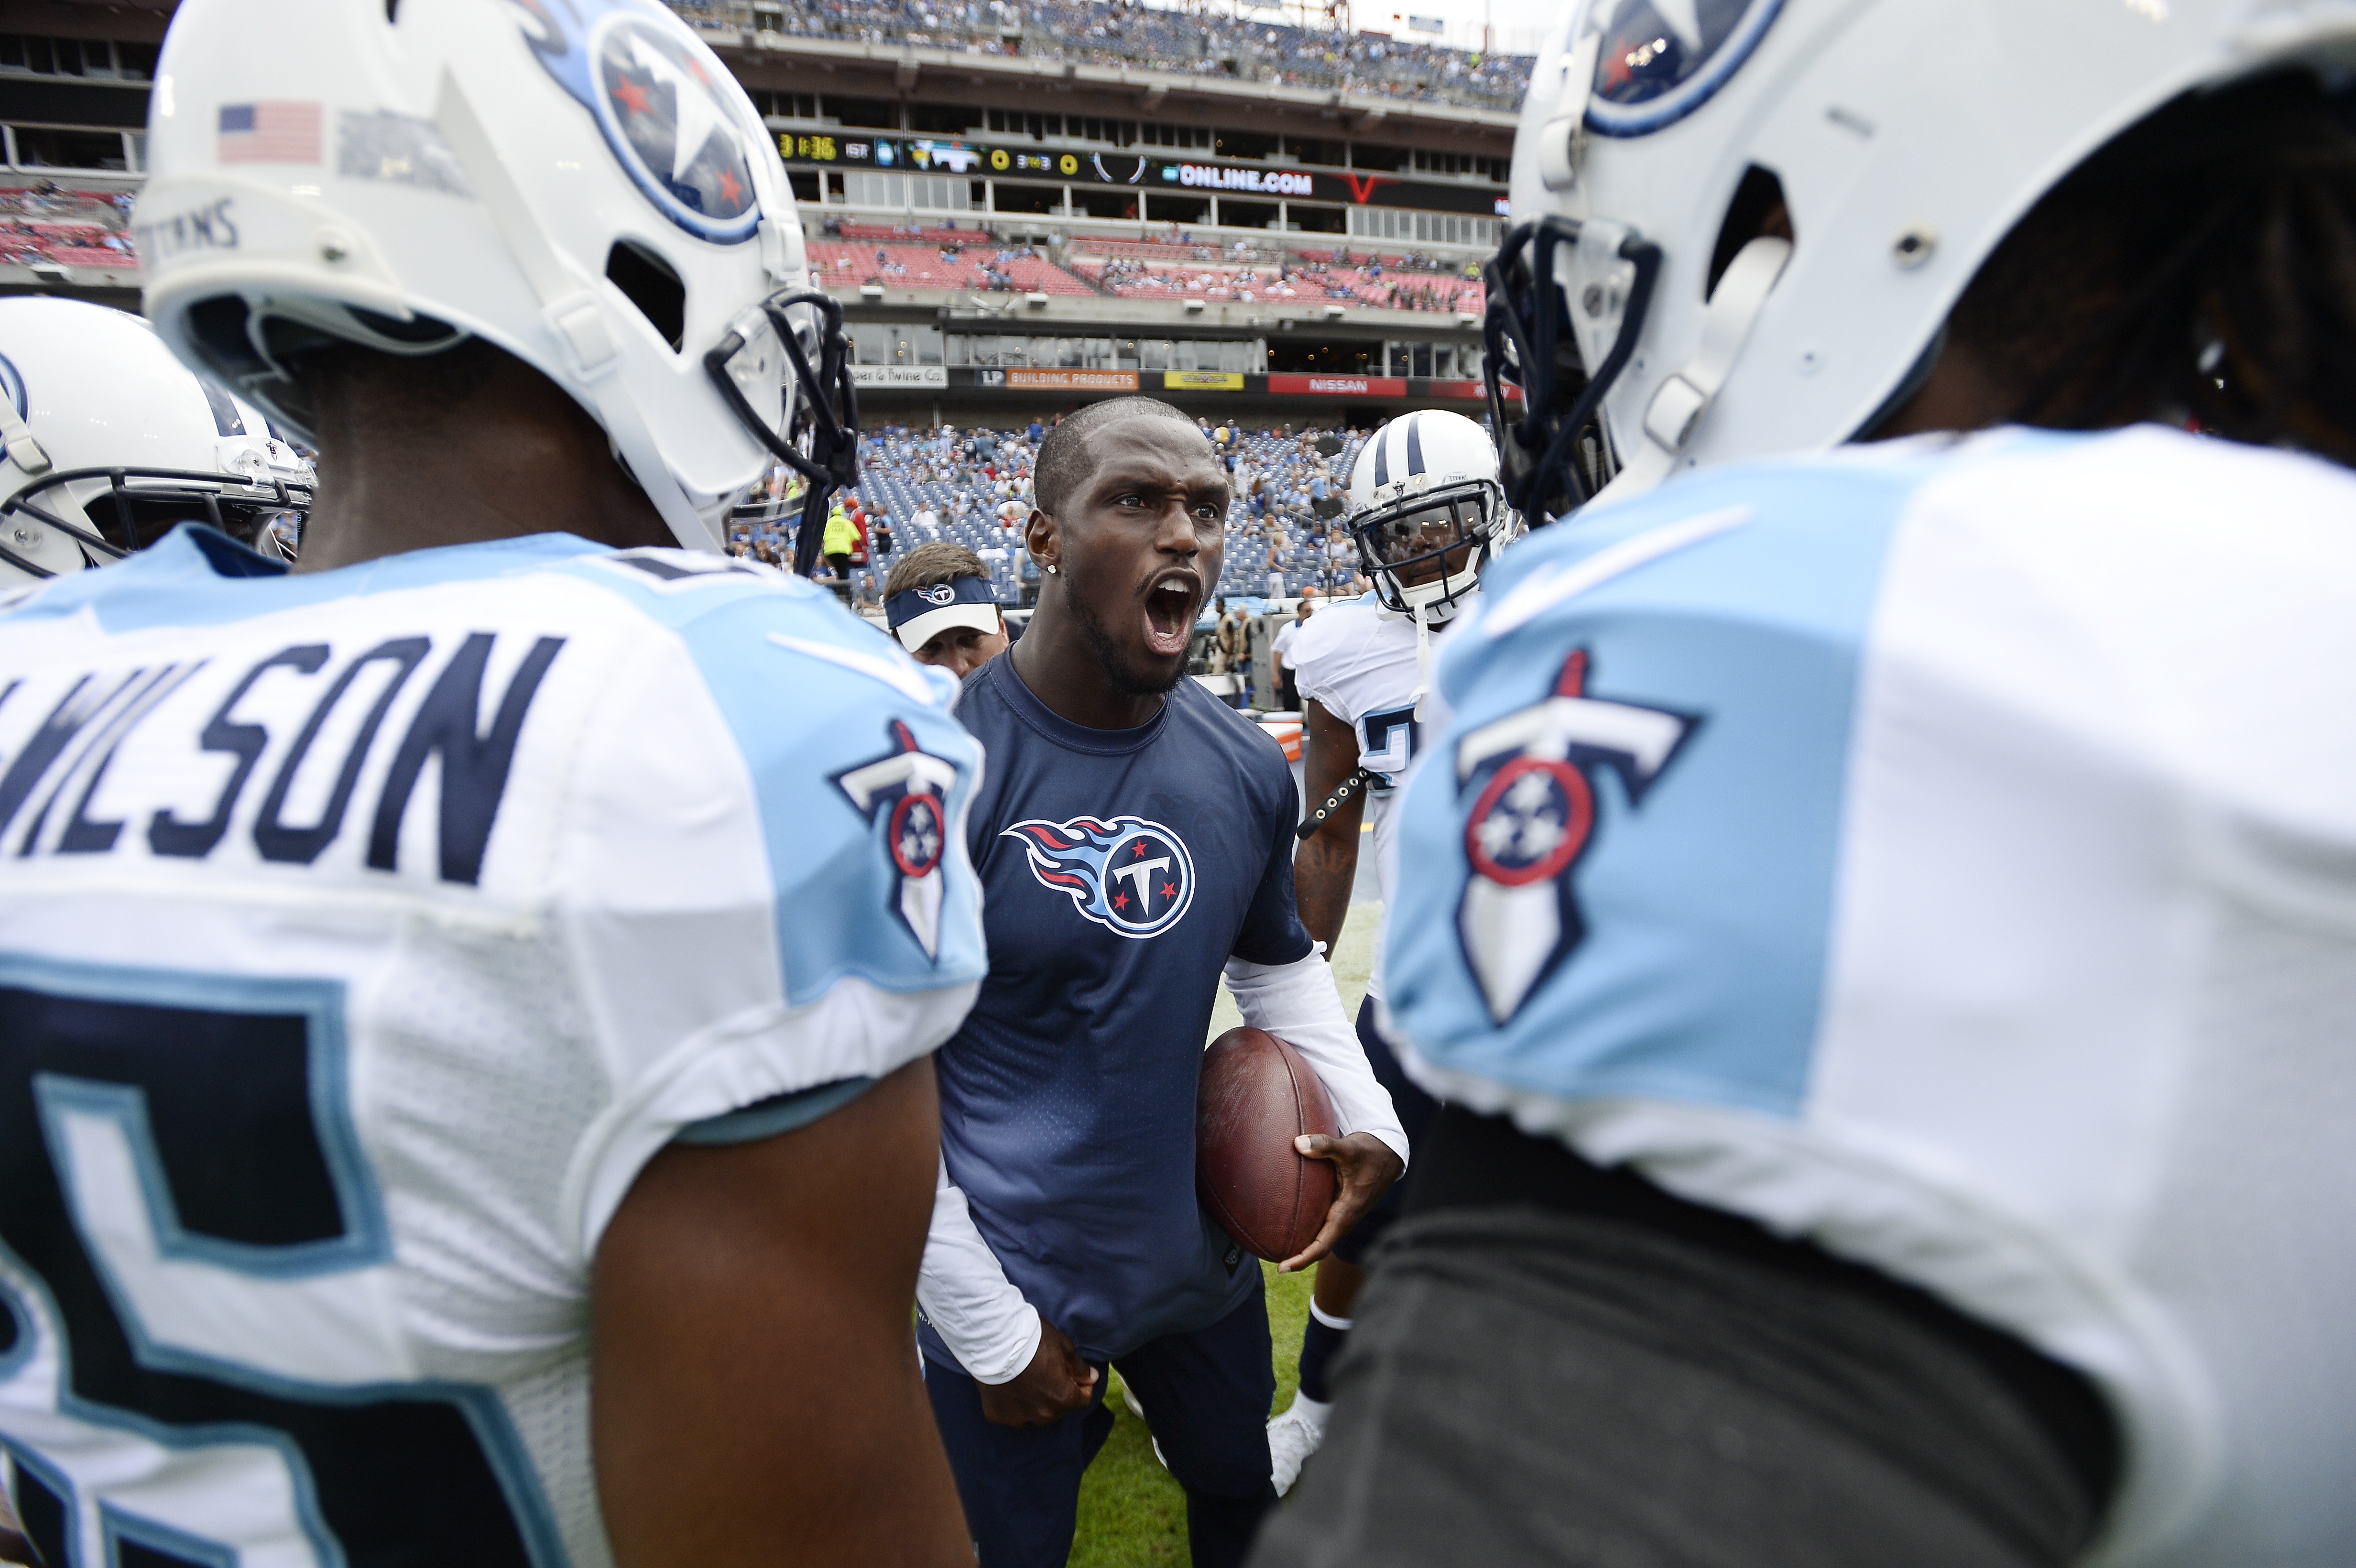 FILE - In this Sept. 27, 2015, file photo, Tennessee Titans cornerback Jason McCourty, center, pumps up teammates before an NFL football game against the Indianapolis Colts in Nashville, Tenn. McCourty finally is ready for his season debut. The Titans cor